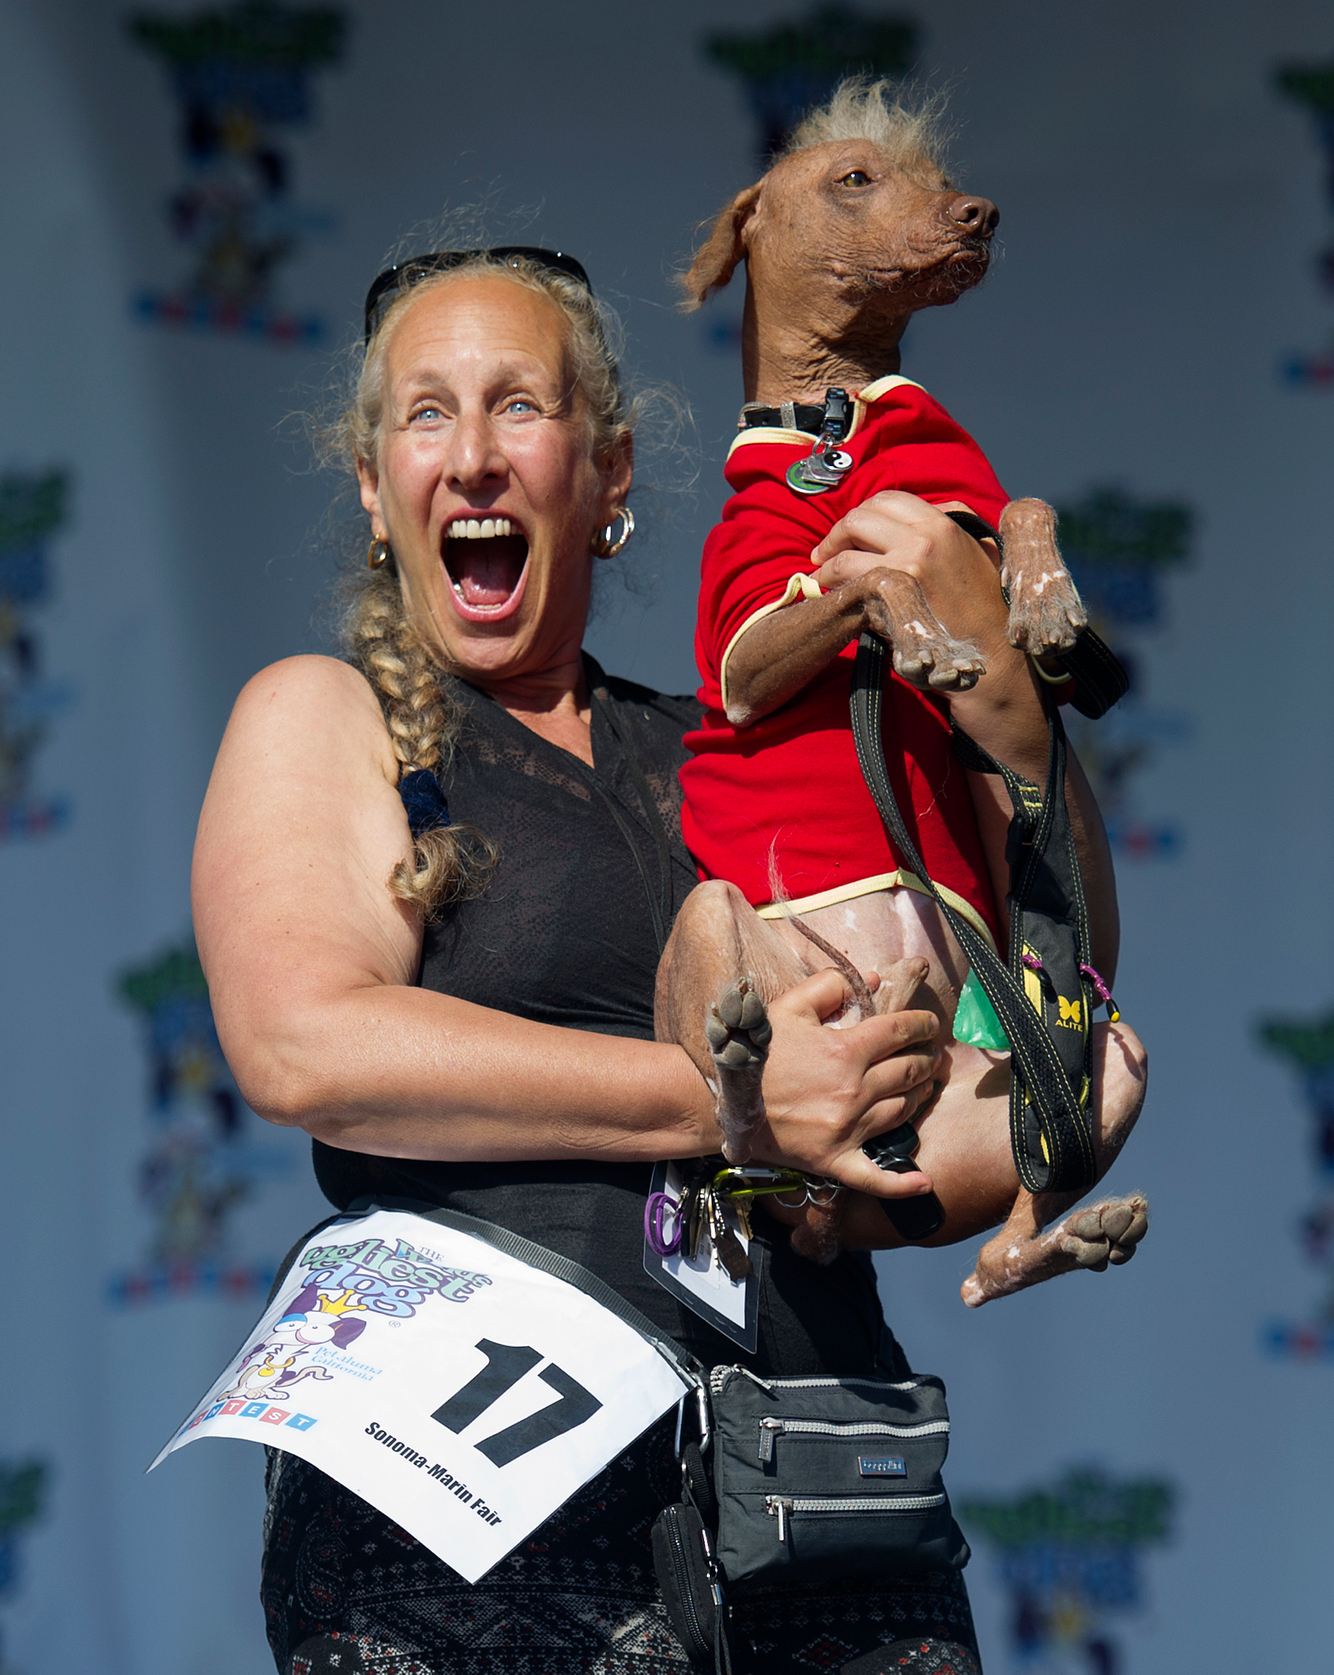 UGLY DOGS: A contestant displays her dog in the World's Ugliest Dog competition